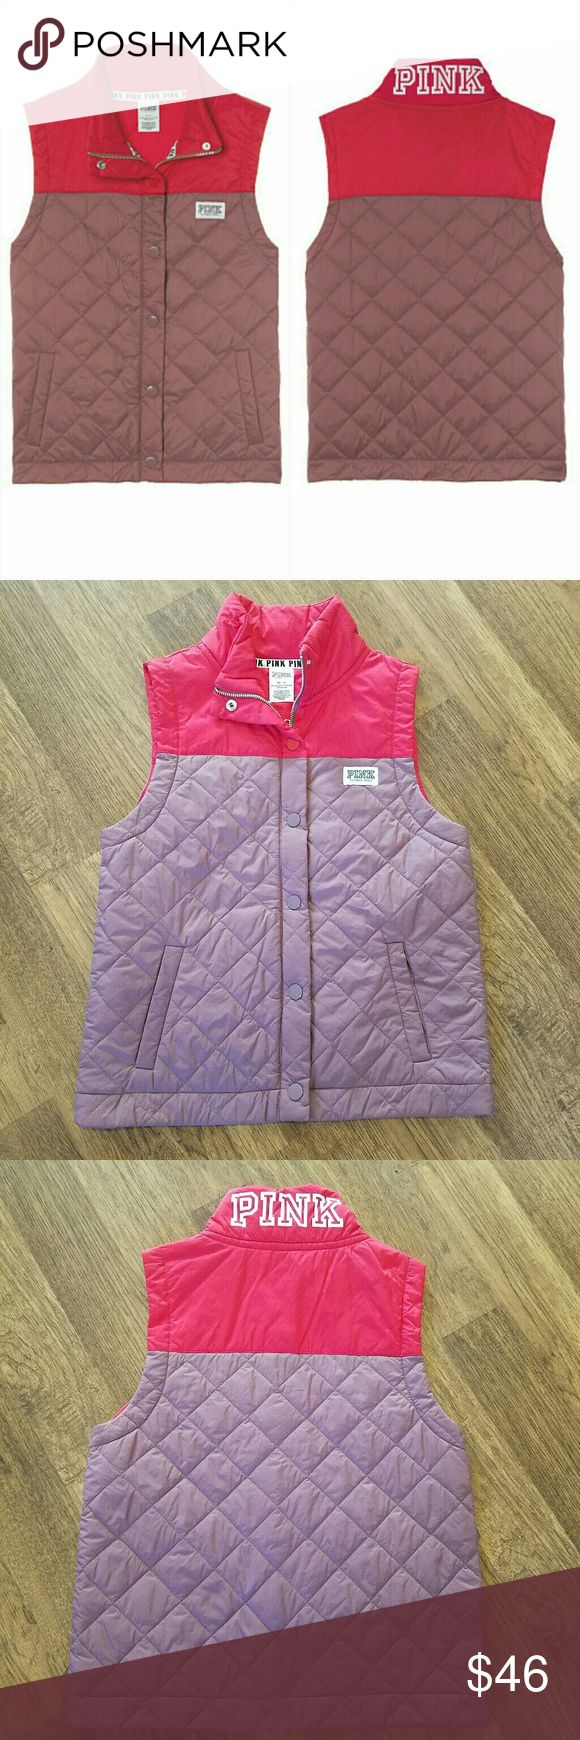 VS Pink Vest NWOT VS Pink Vest  Size XS Fits a little oversized Puffer style, quilted look Side pockets Logo printed on back  Snap buttons and full zip Soft begonia & red color block   Brand new item without original shipping bag from online order Same day shipping in most cases PINK Victoria's Secret Jackets & Coats Vests